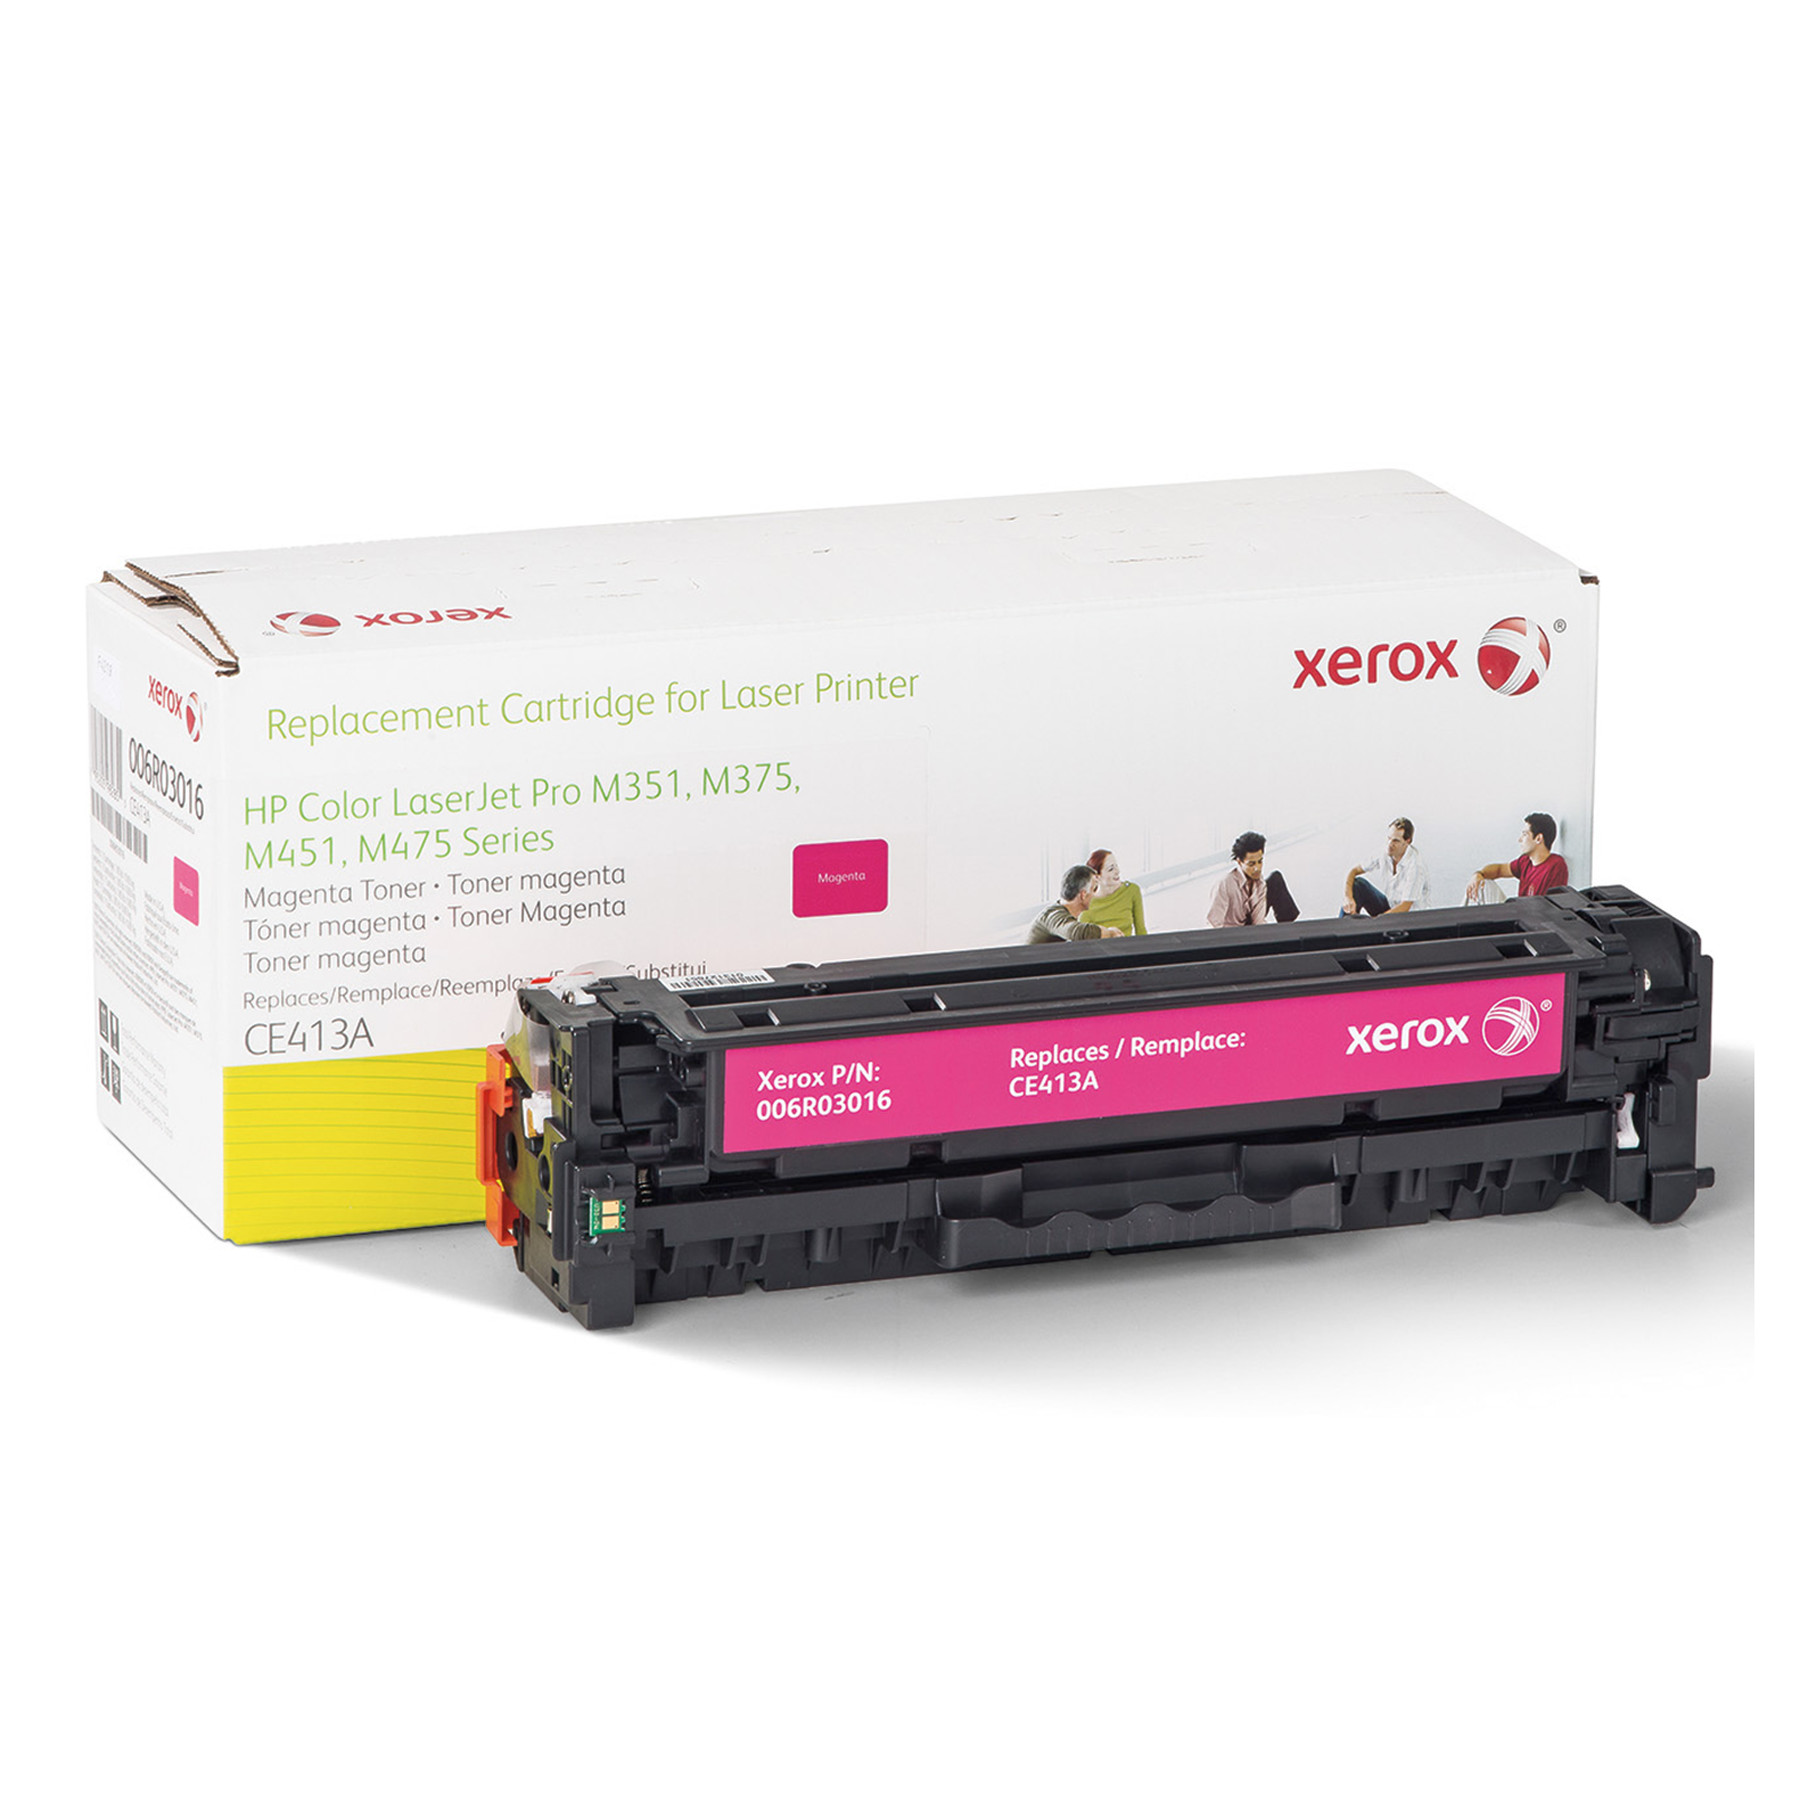 Refurbished Xerox 6R3016 (CE413A)-Compatible Toner, 2,600-Page Yield, Magenta